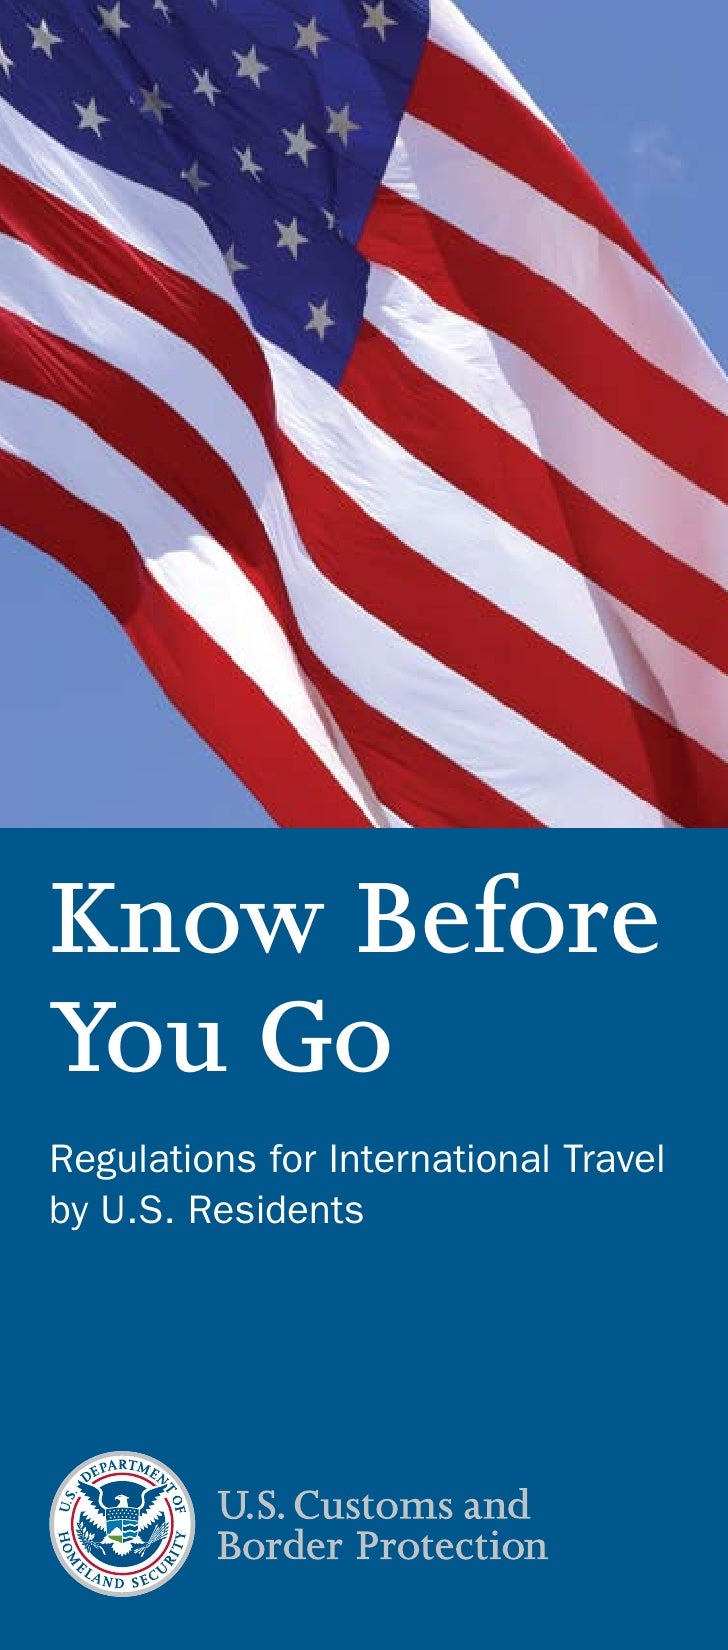 Know Before You Go Regulations for International Travel by U.S. Residents